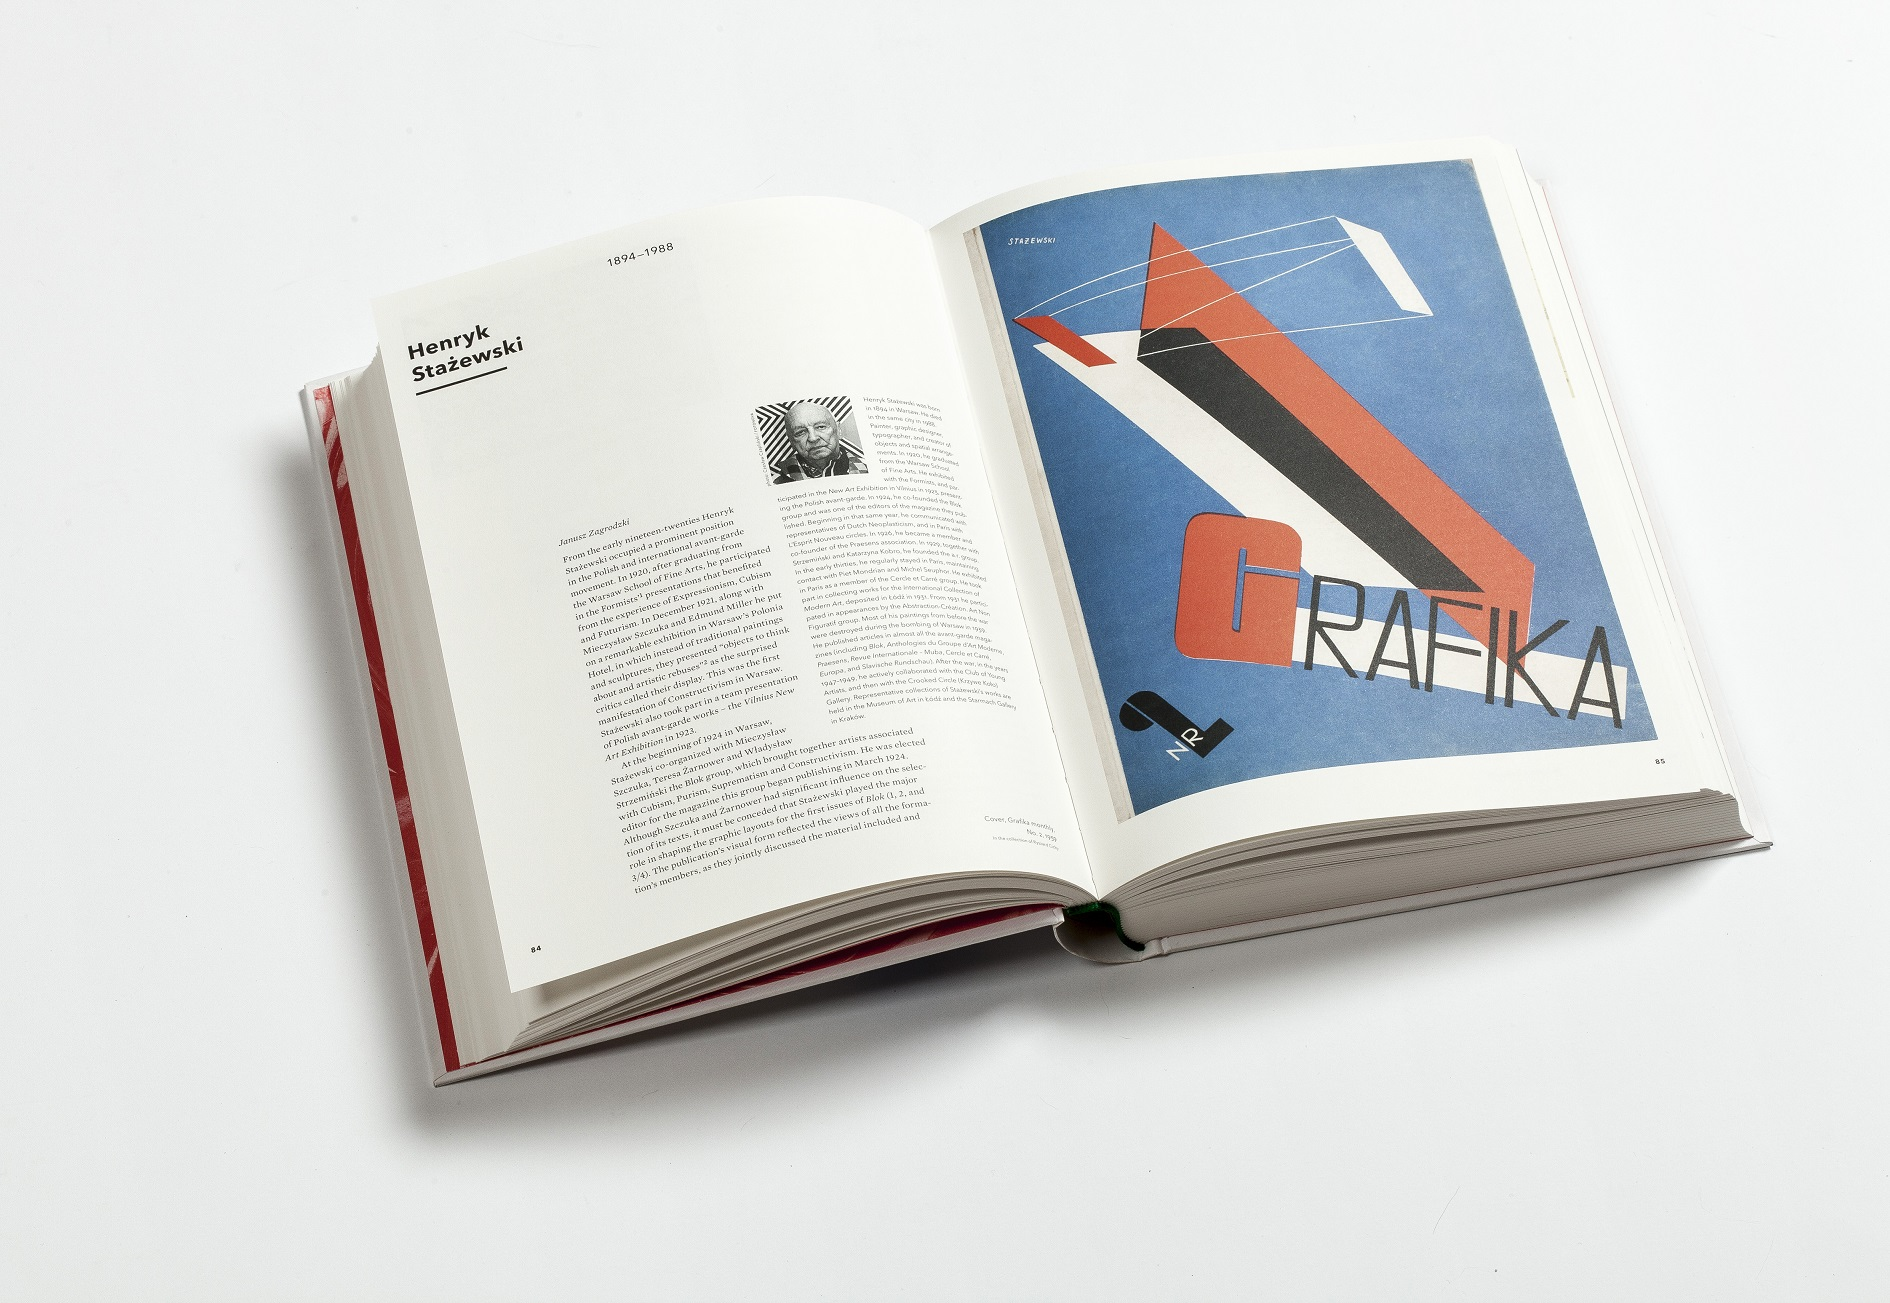 Stupendous Verygraphic Polish Designers Of The 20Th Century Design Download Free Architecture Designs Lectubocepmadebymaigaardcom